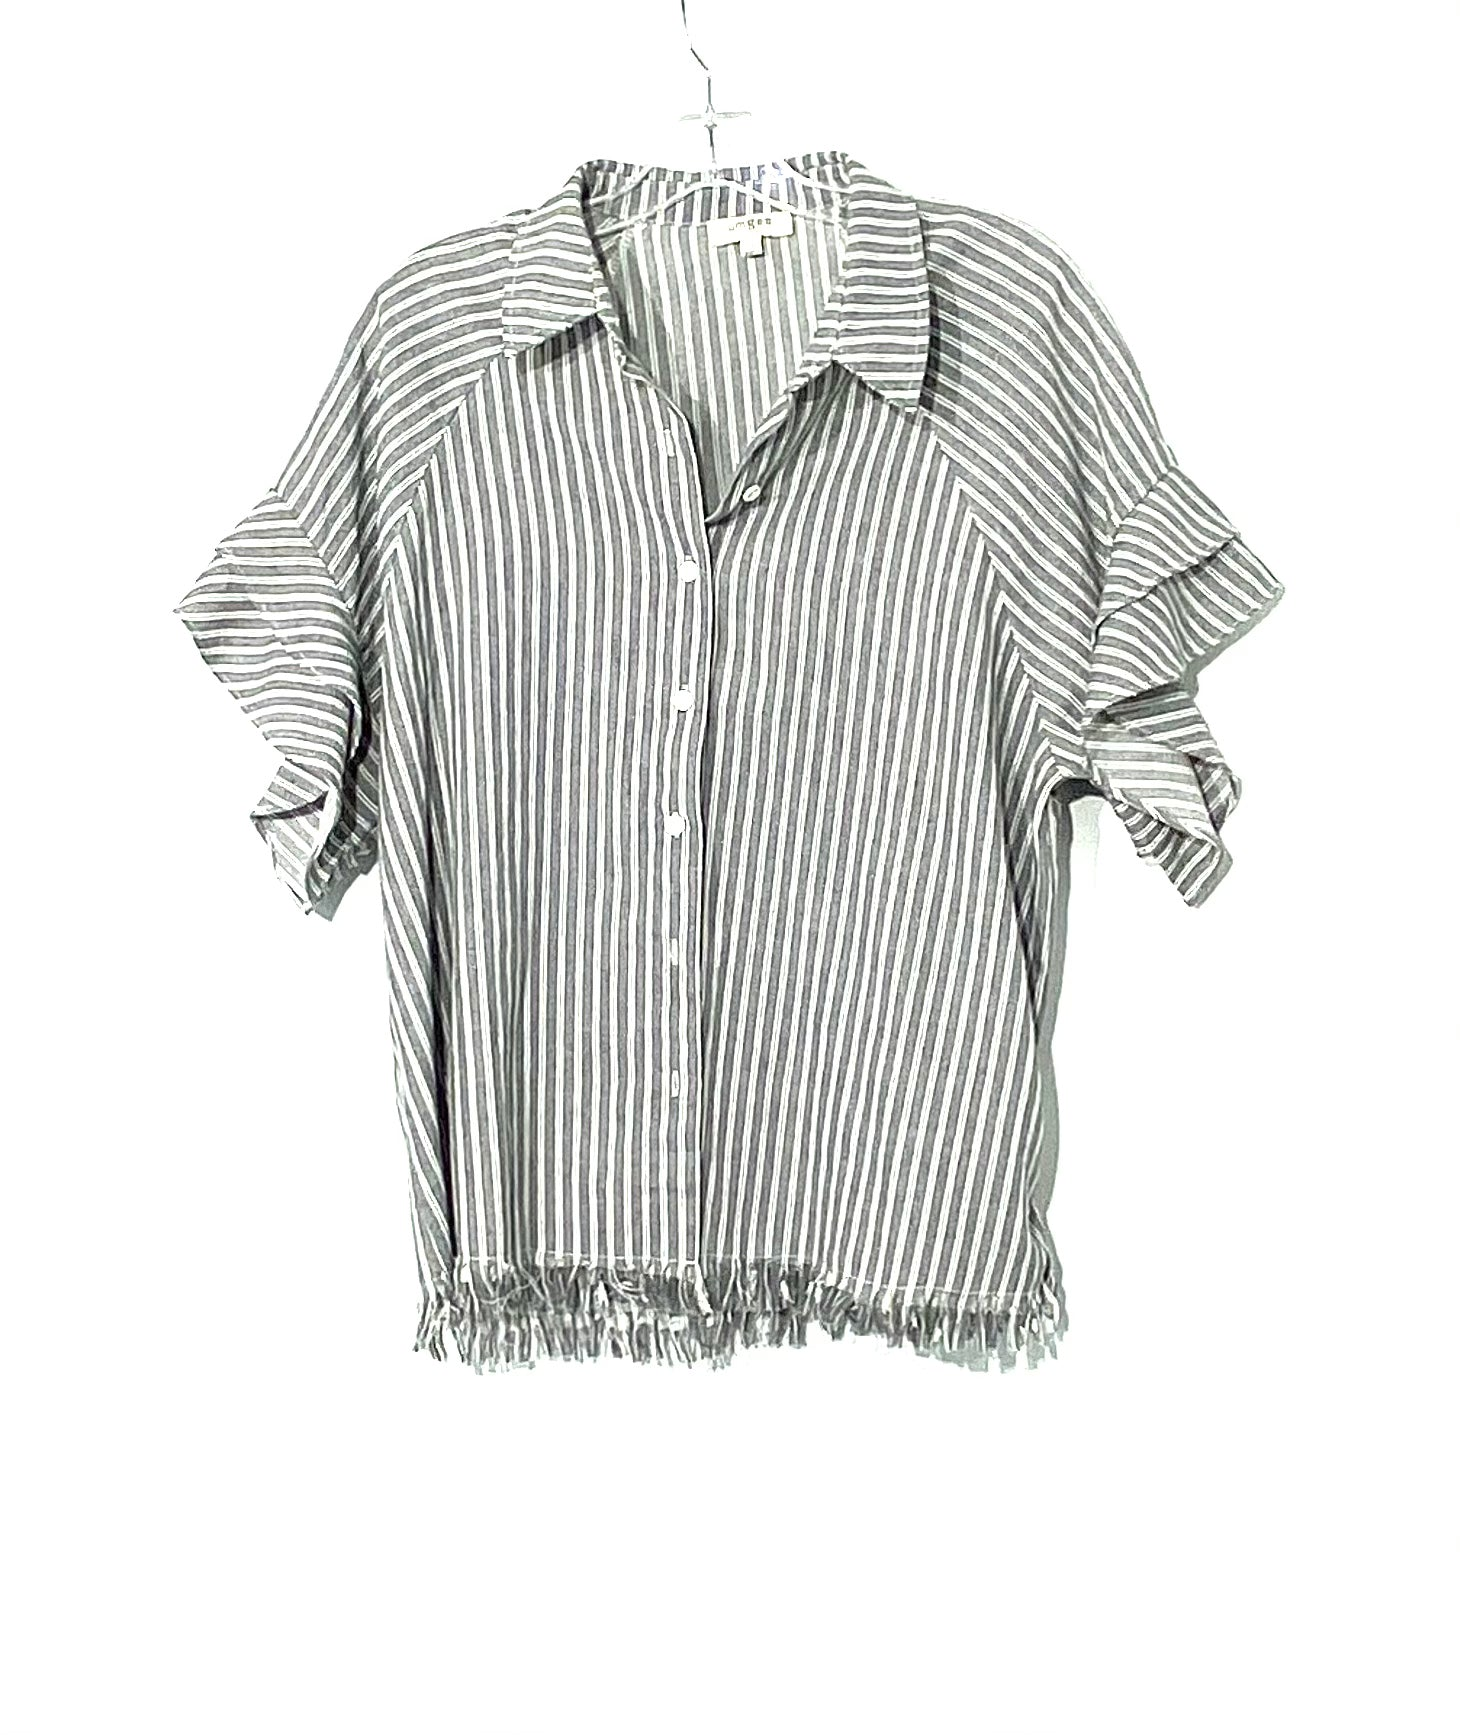 Primary Photo - BRAND: UMGEE <BR>STYLE: TOP SHORT SLEEVE <BR>COLOR: STRIPED <BR>SIZE: S <BR>SKU: 262-26275-62101